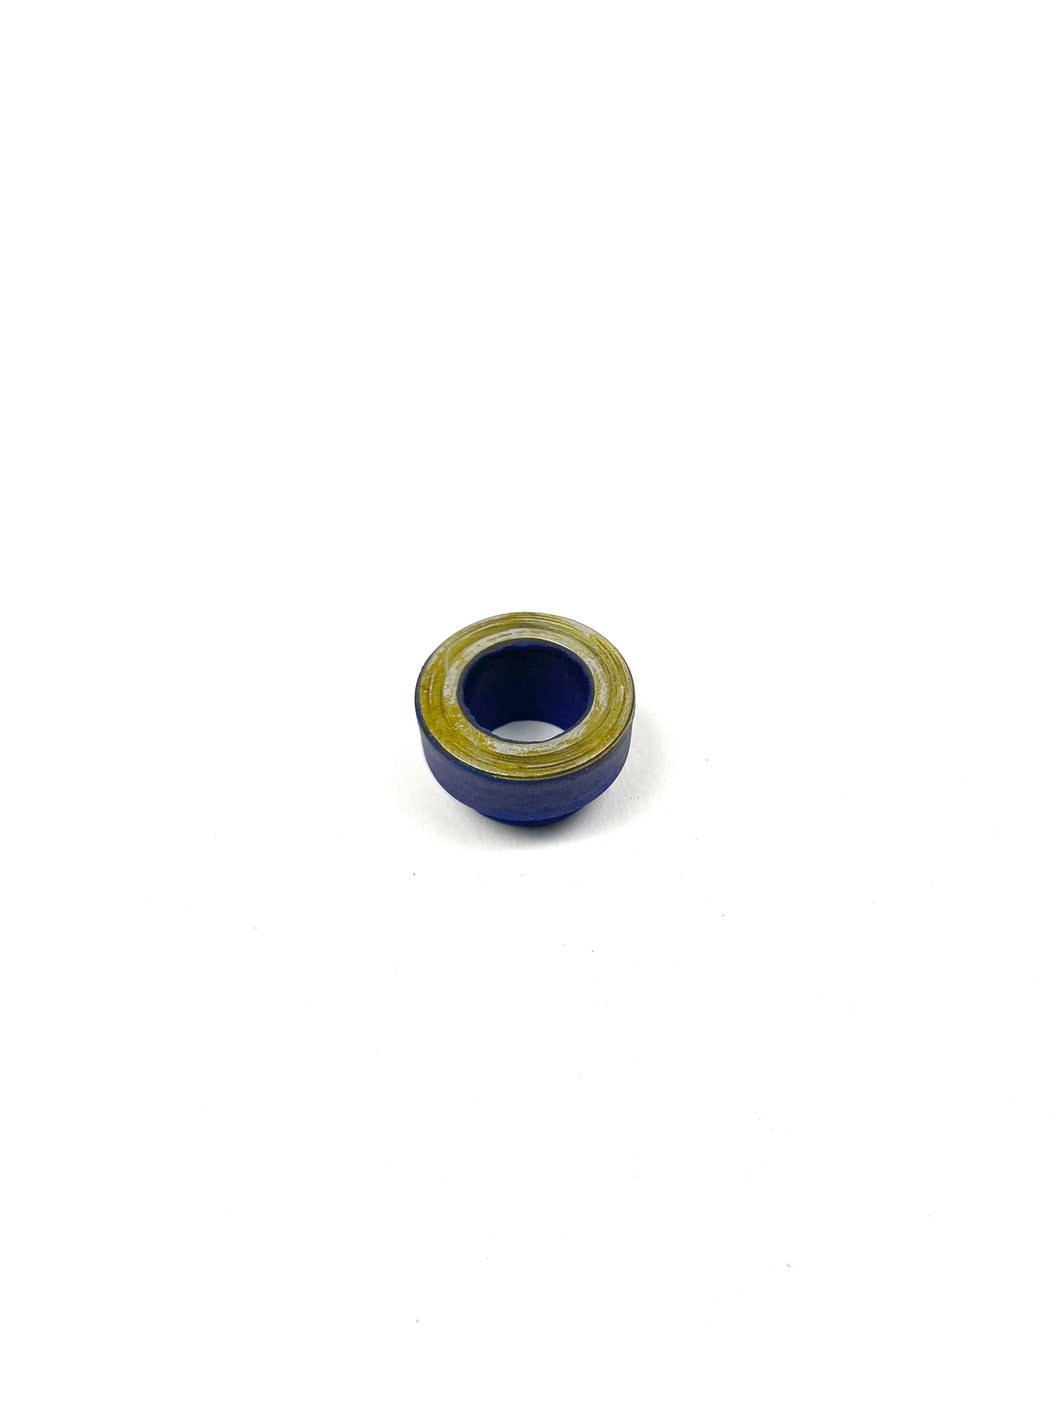 Detroit 60 Series ECM Isolator Bushing⎪Replaces Detroit 23512307